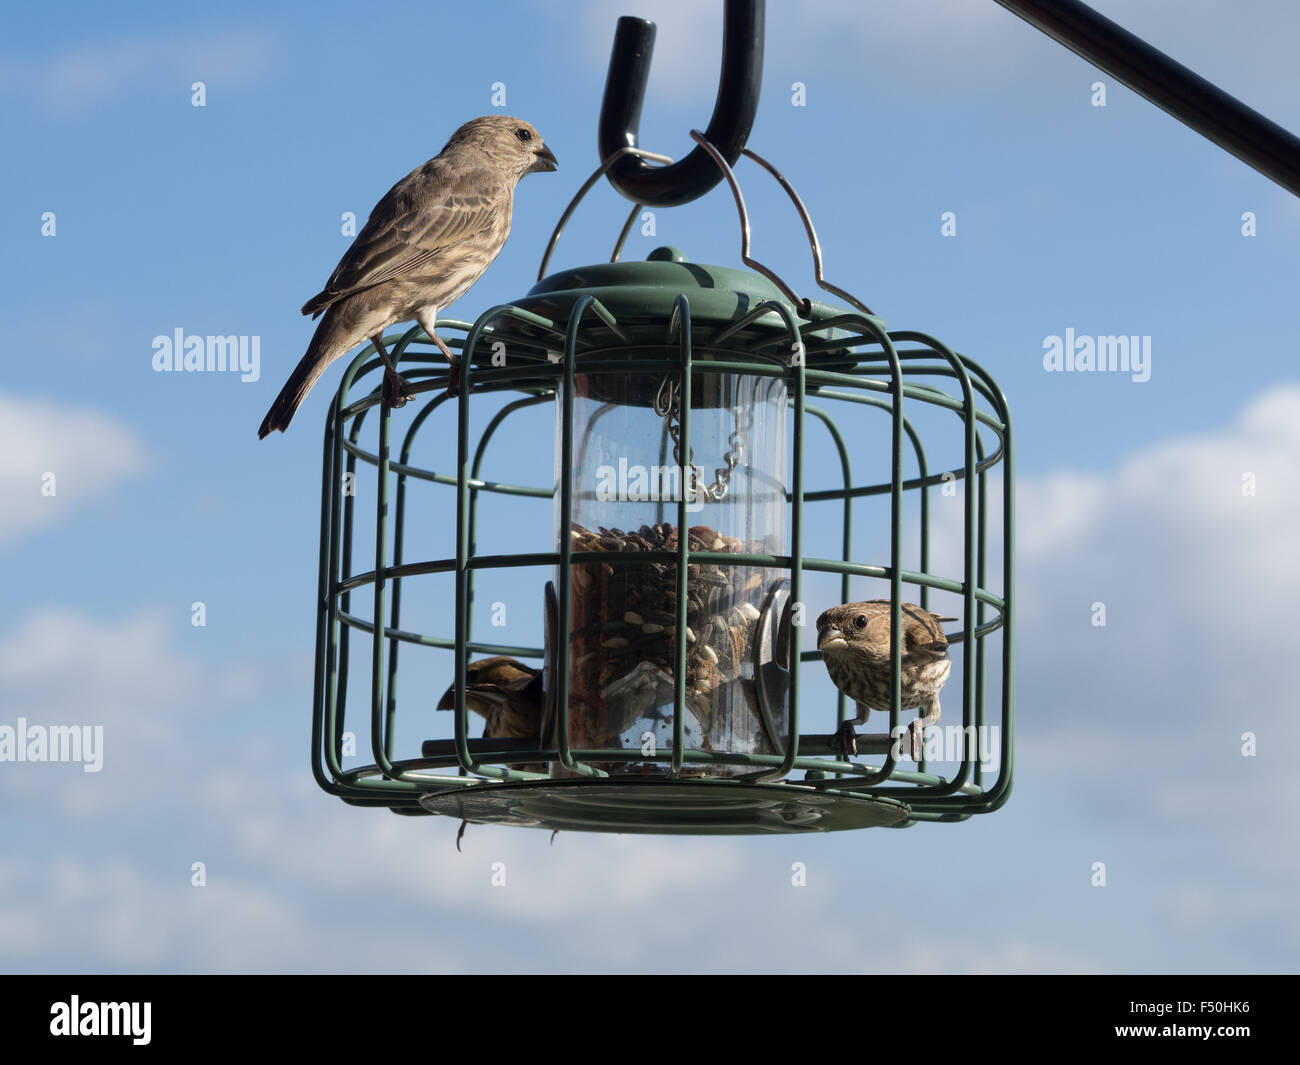 Finches eating from a bird feeder - Stock Image